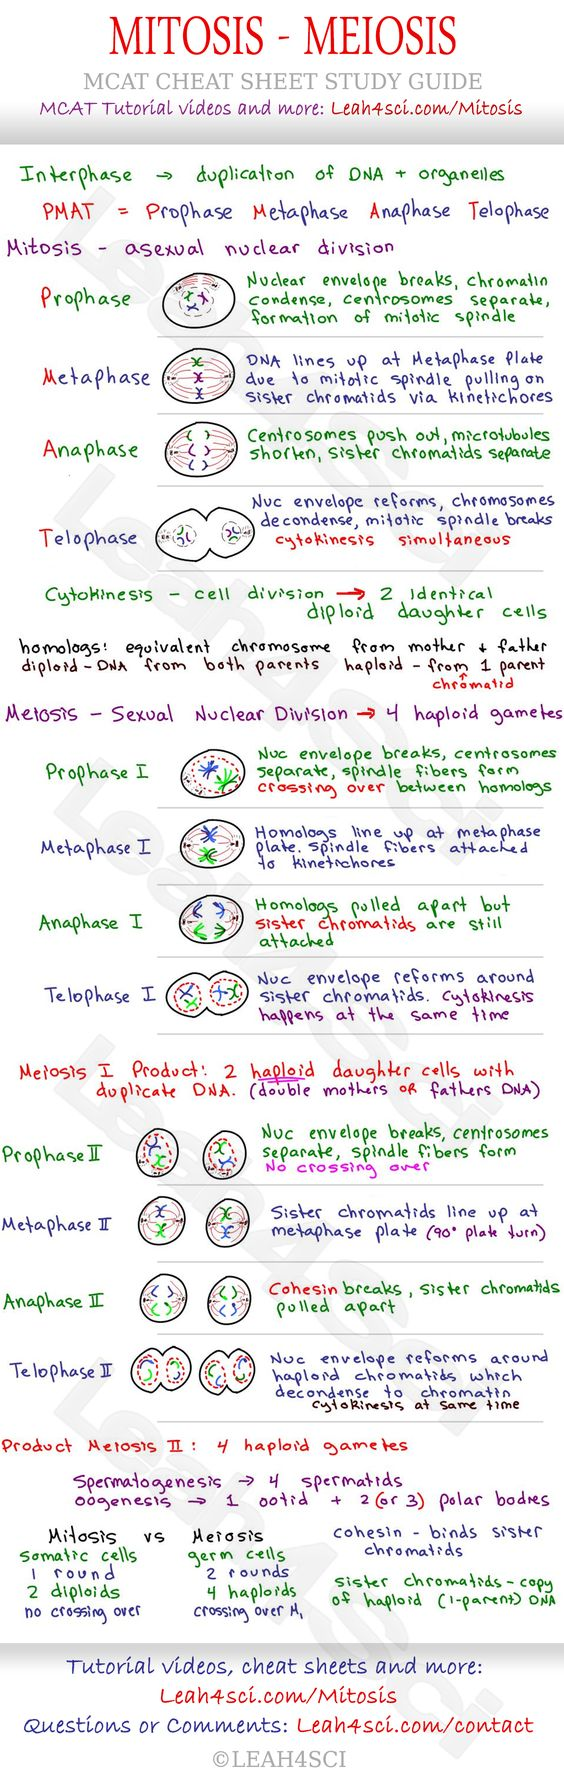 Mitosis Nd Meiosis Mc T Che T Sheet Study Guide Le Rn Wh T